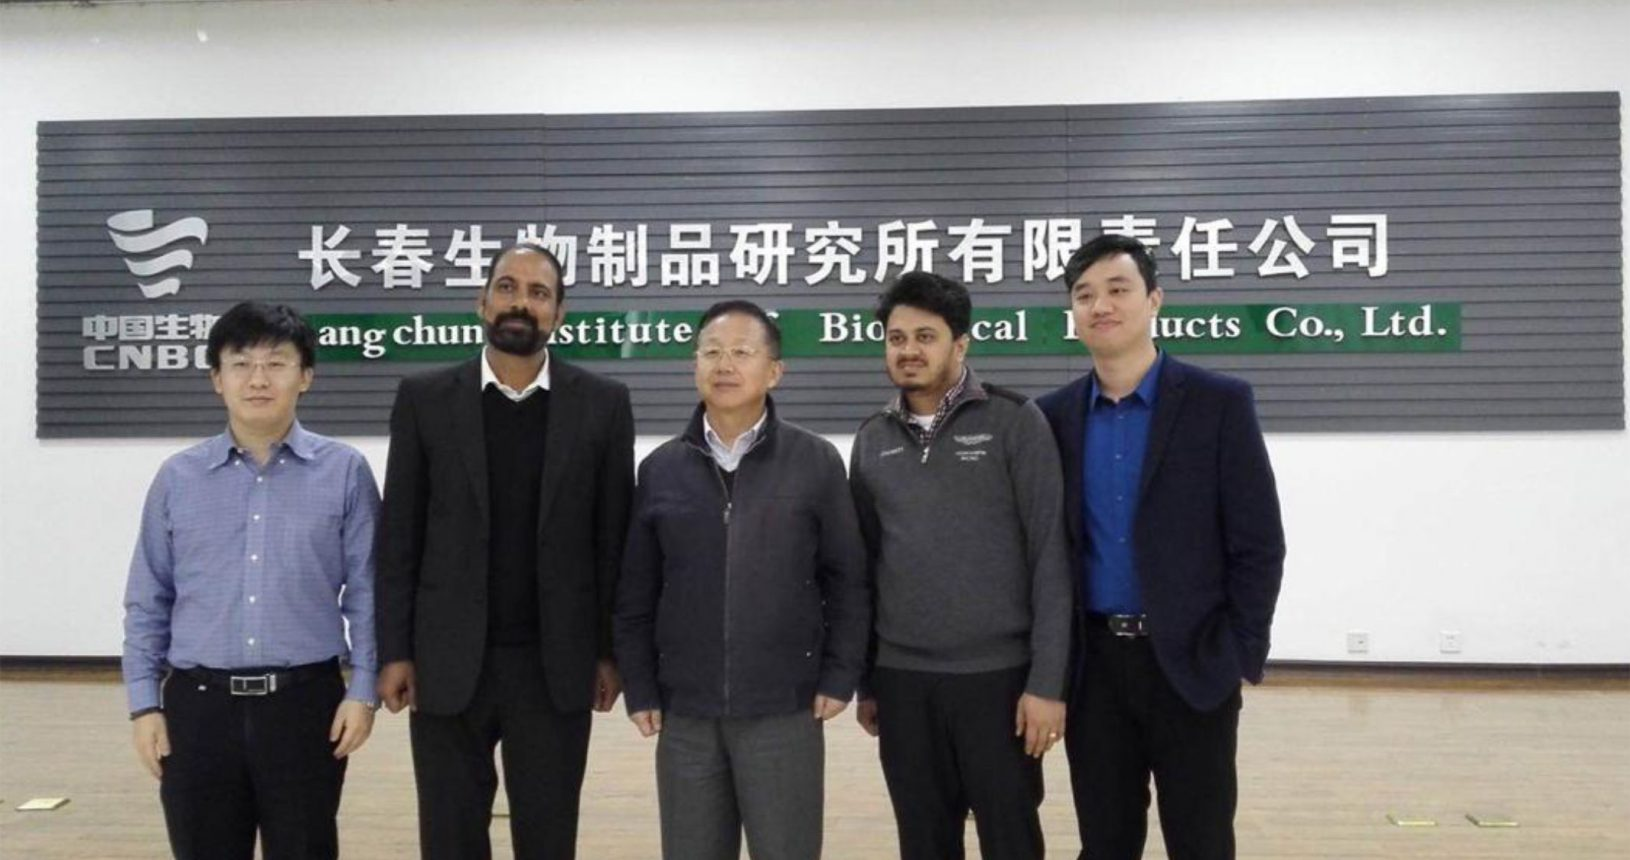 Mr. Pranav Bhagat with Mr. Mathew at Chang Chun institute of Biological products China